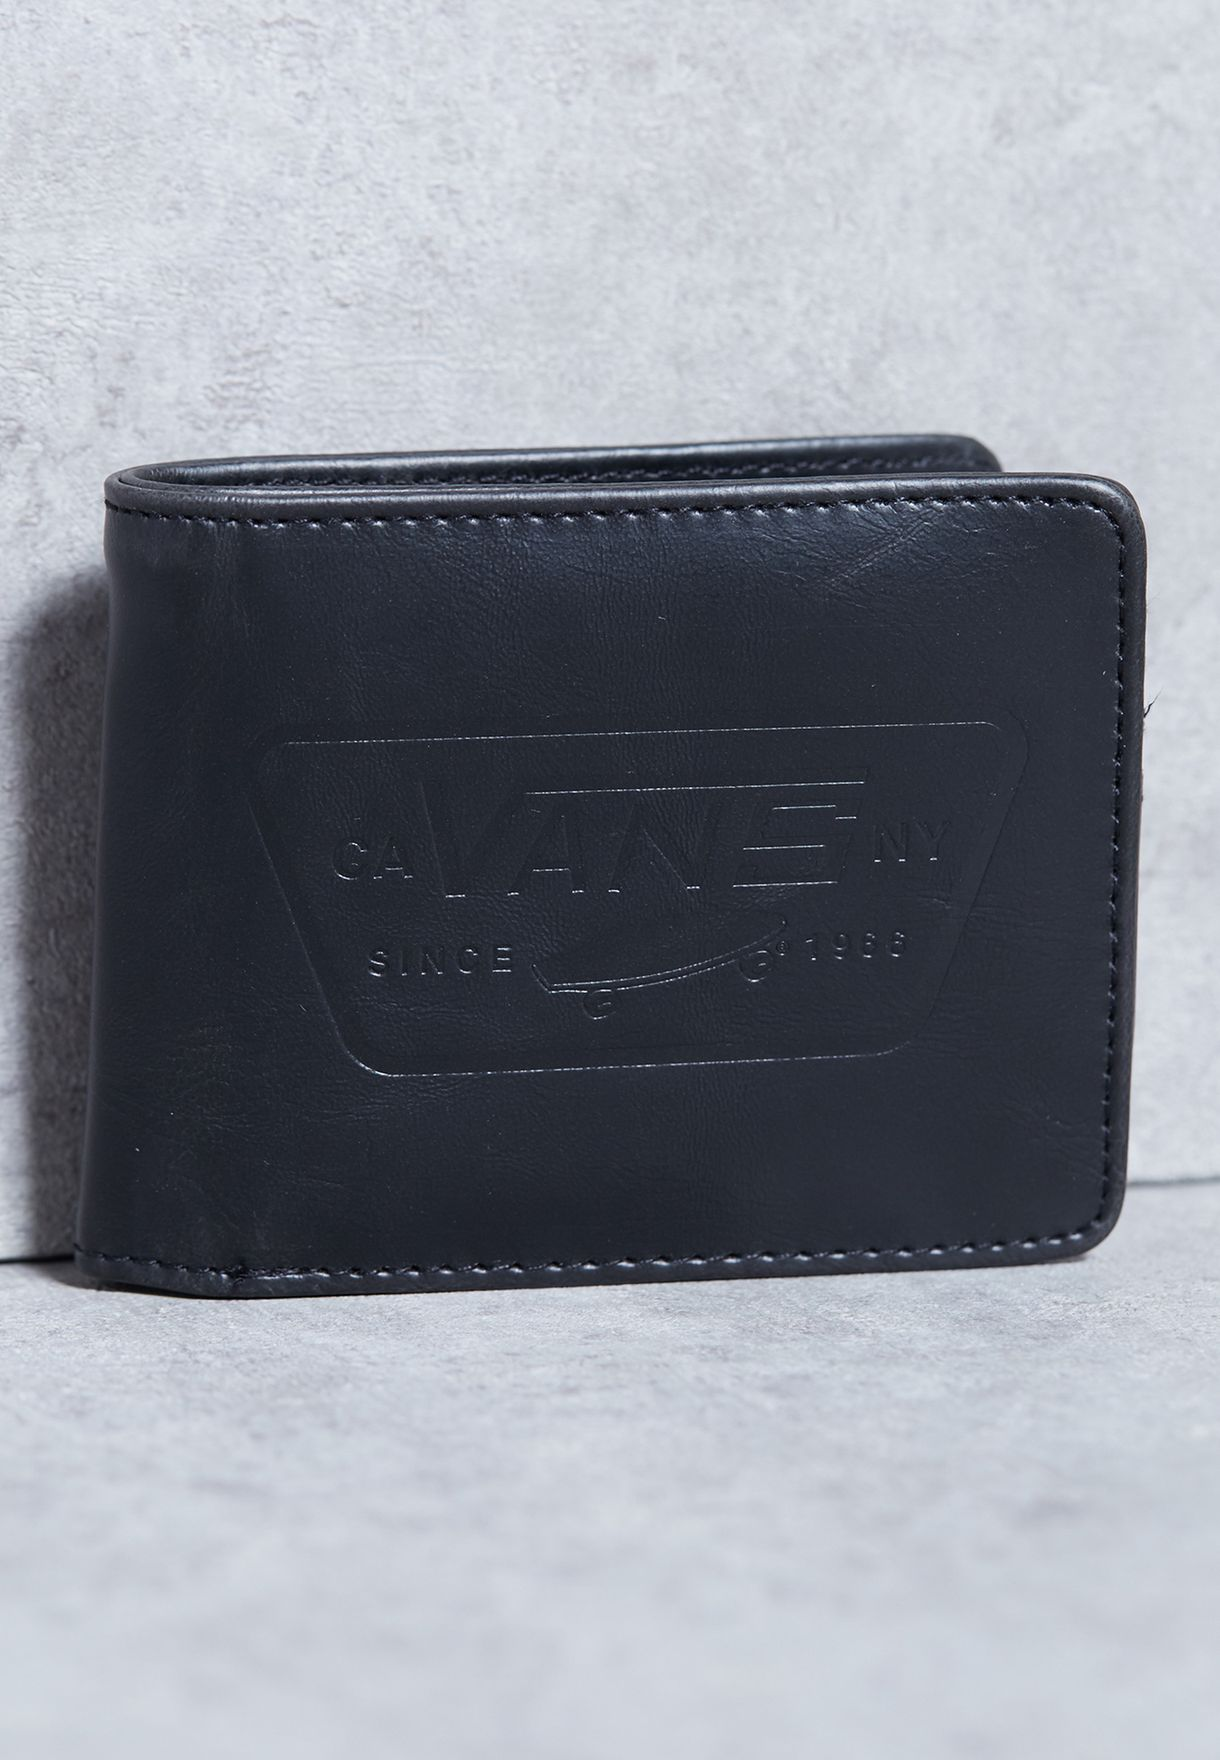 66b719af252ae8 Shop Vans black Full Patch Bifold Wallet VA0YYBLK for Men in Saudi -  VA088AC04ENR